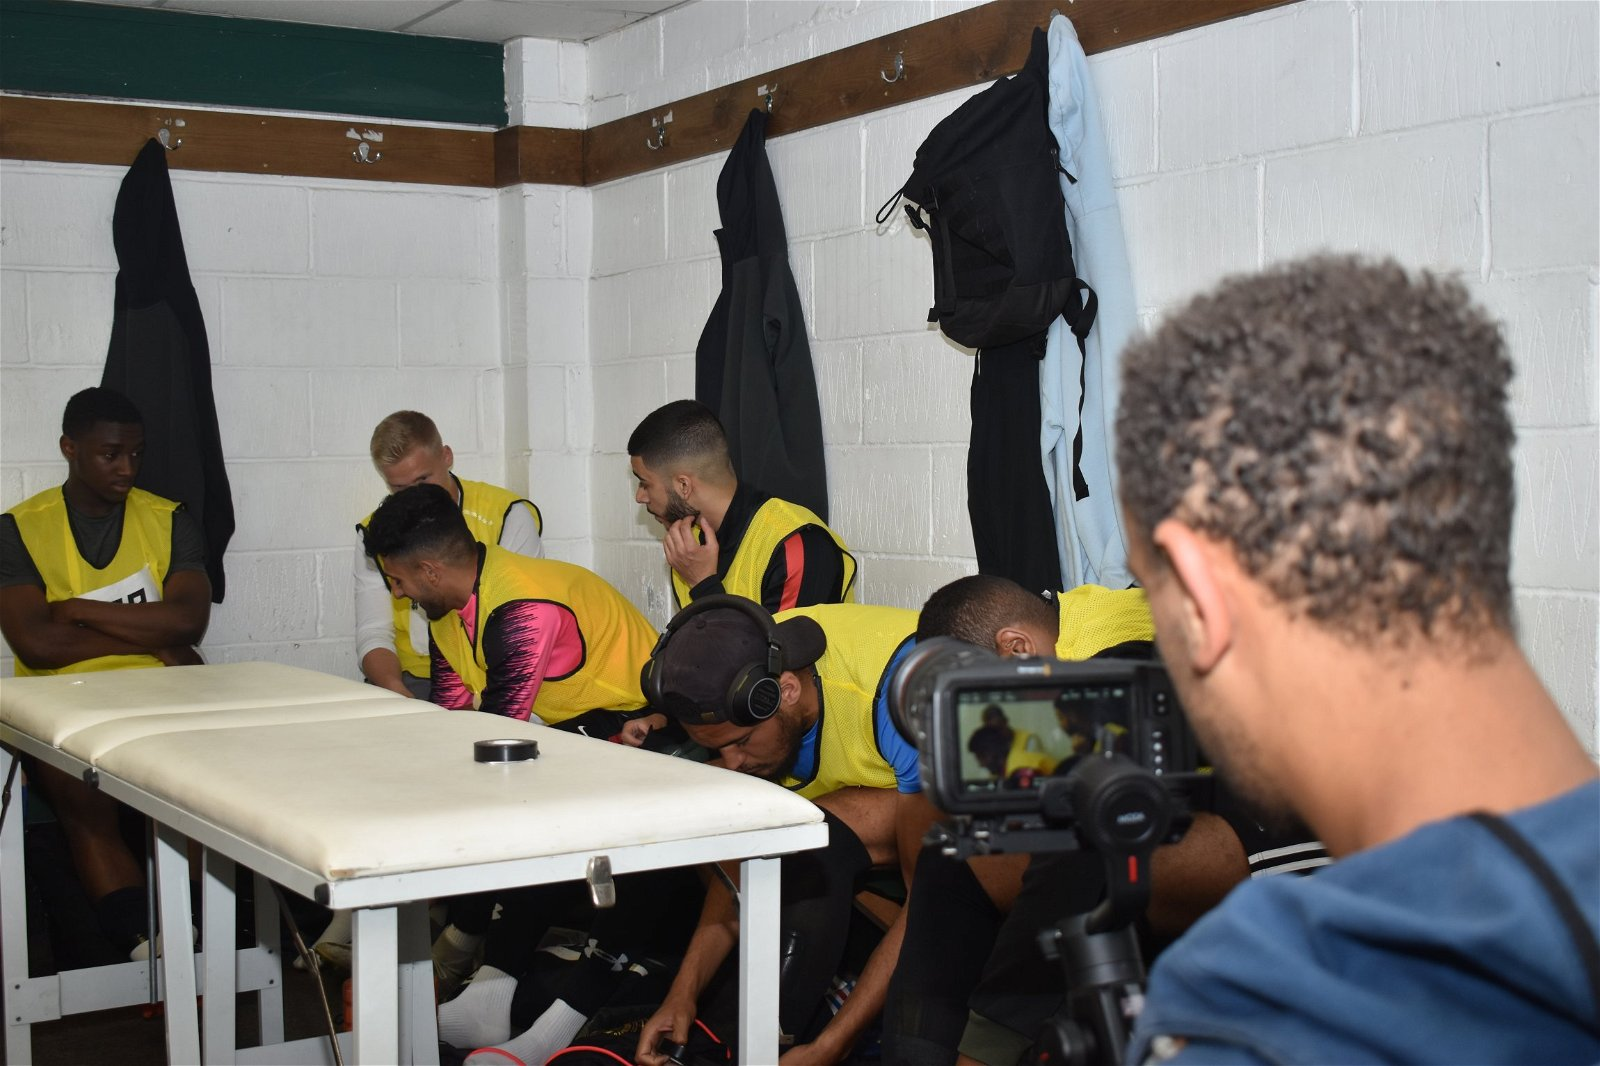 3 HASHTAG ACADEMY 5 boys wait in changing rooms - [Images] - Take a look at the best photos from the third day of the Hashtag Academy!